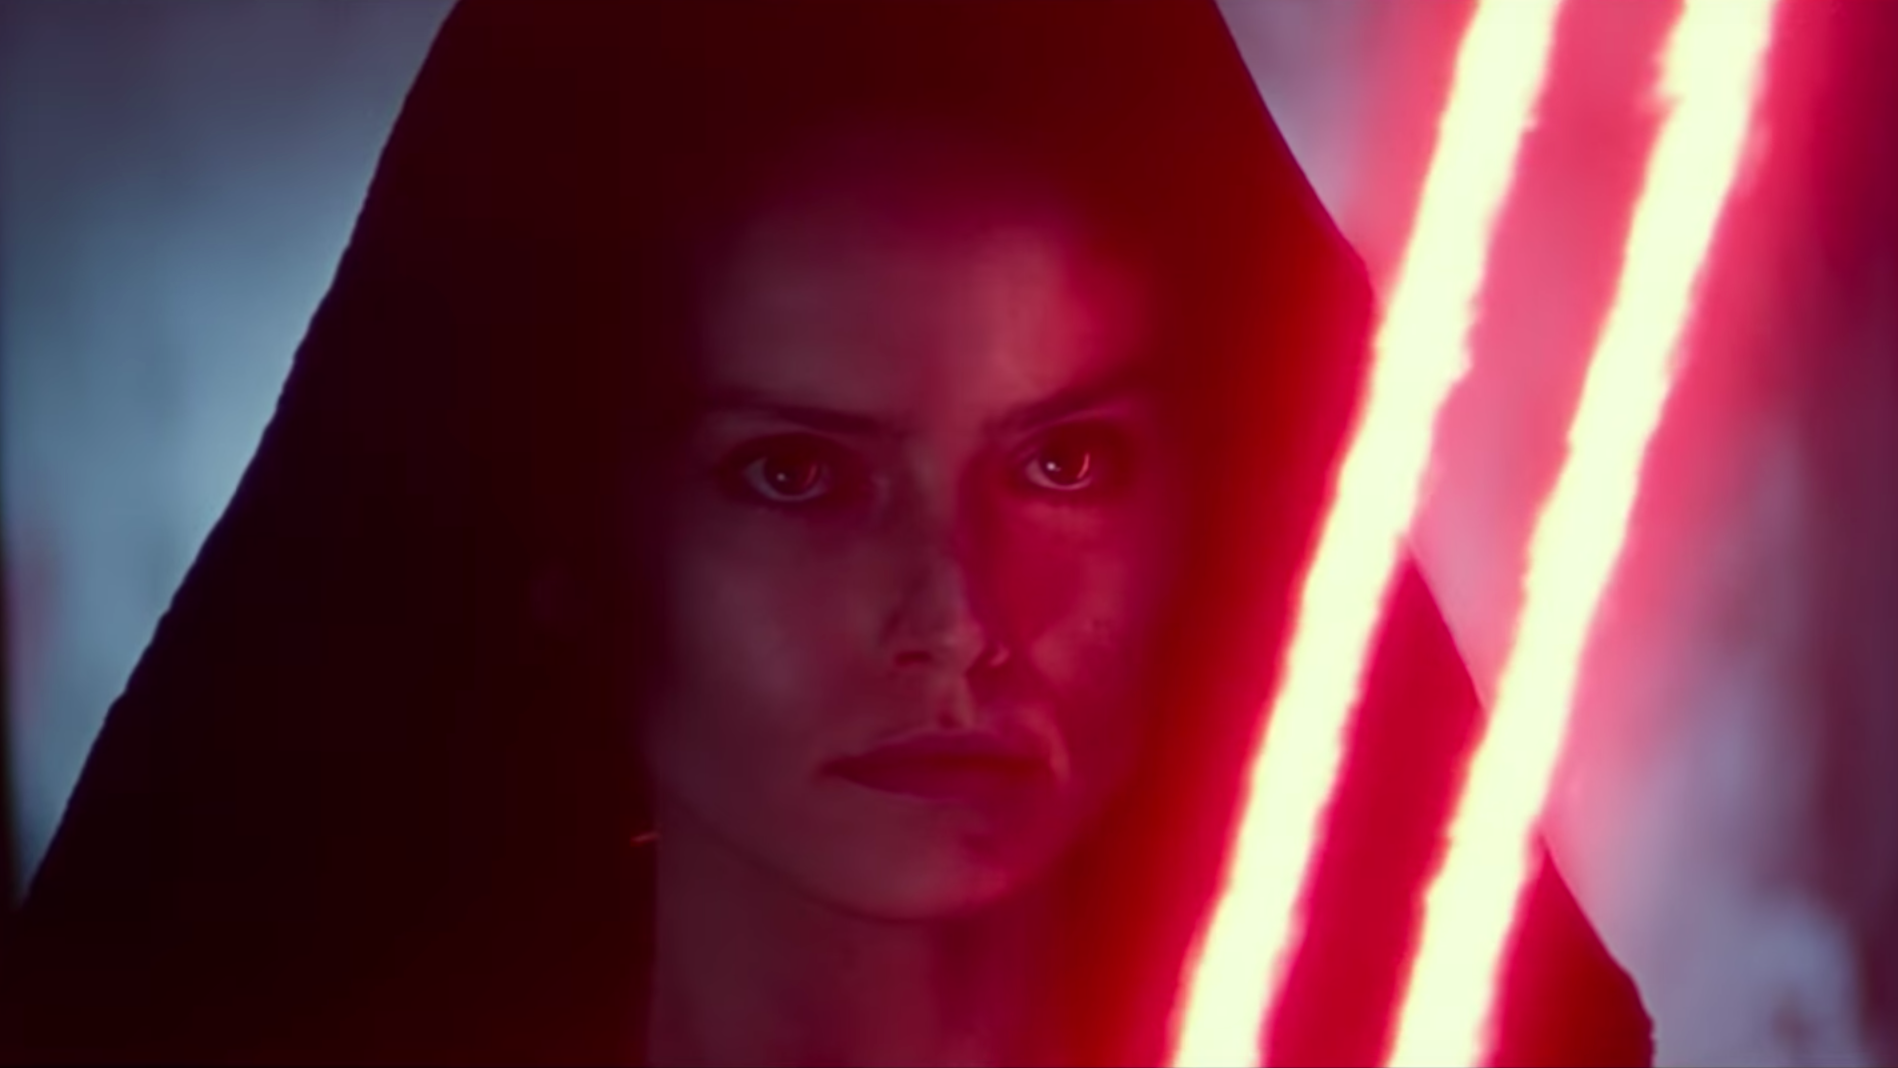 Star Wars: The Rise Of Skywalker's Lightsabers Are Holding Some Incredible Design Secrets